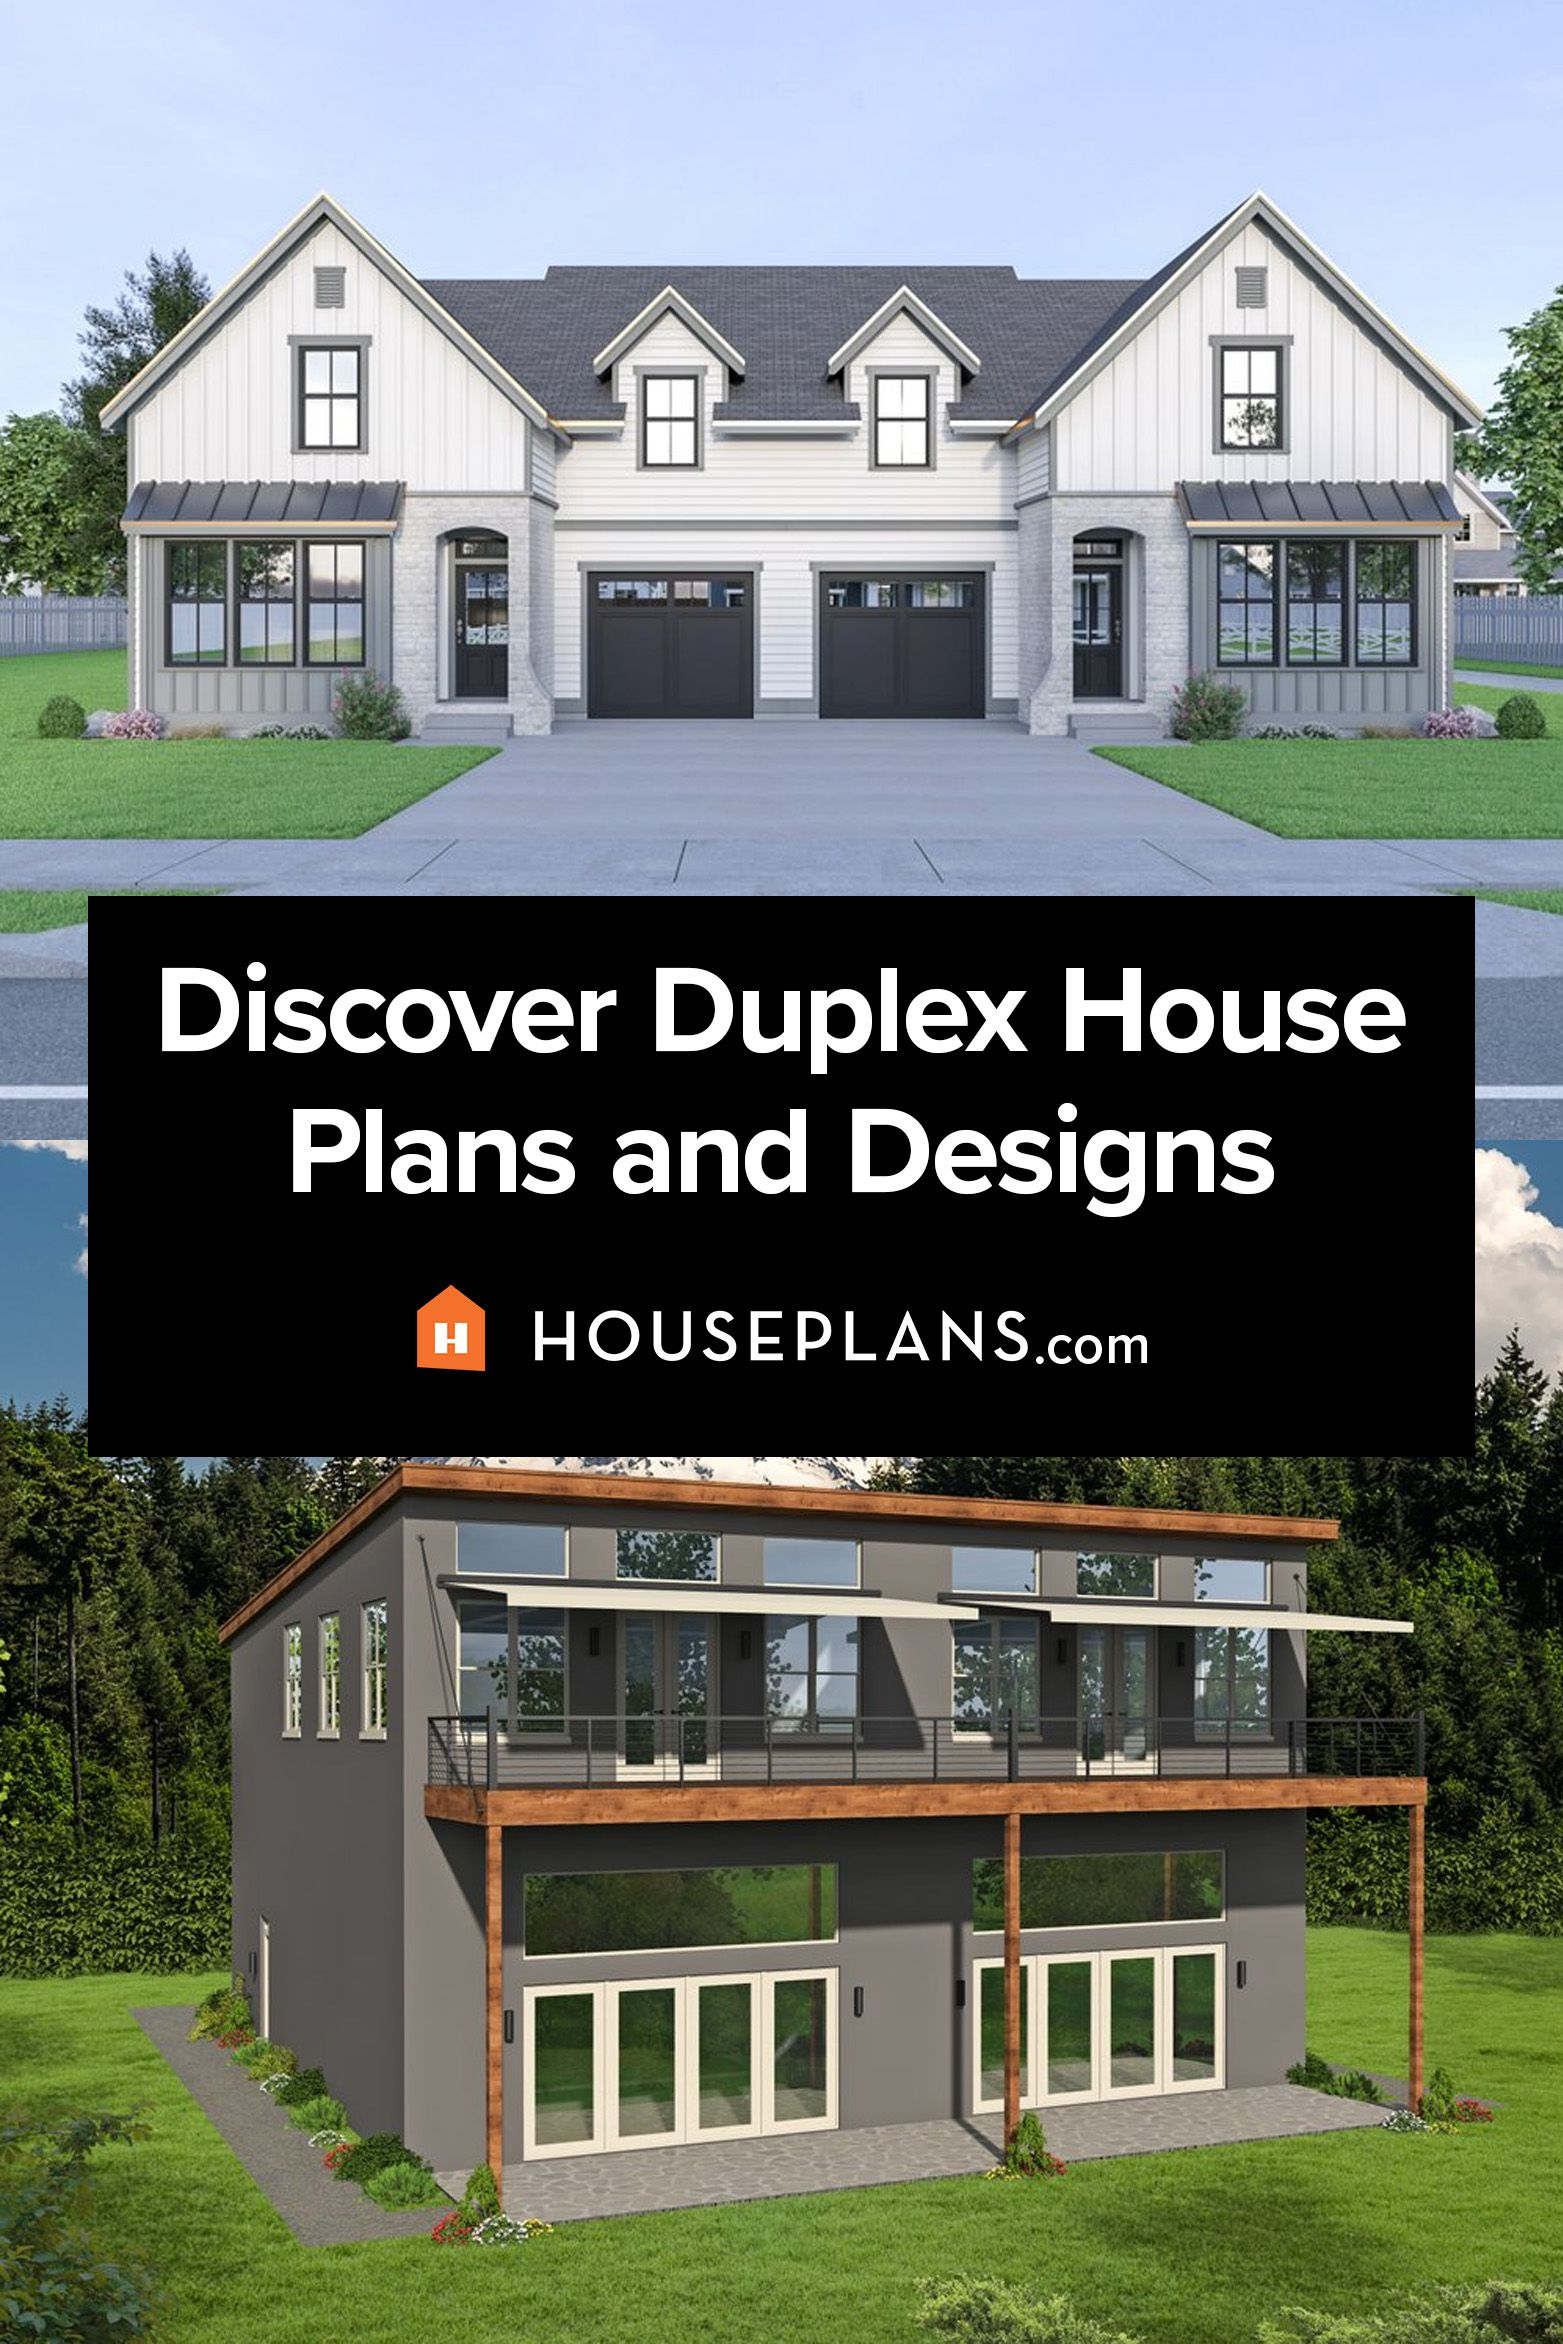 Duplex House Plans And More Duplex House Plans House Plans Modern Farmhouse Plans